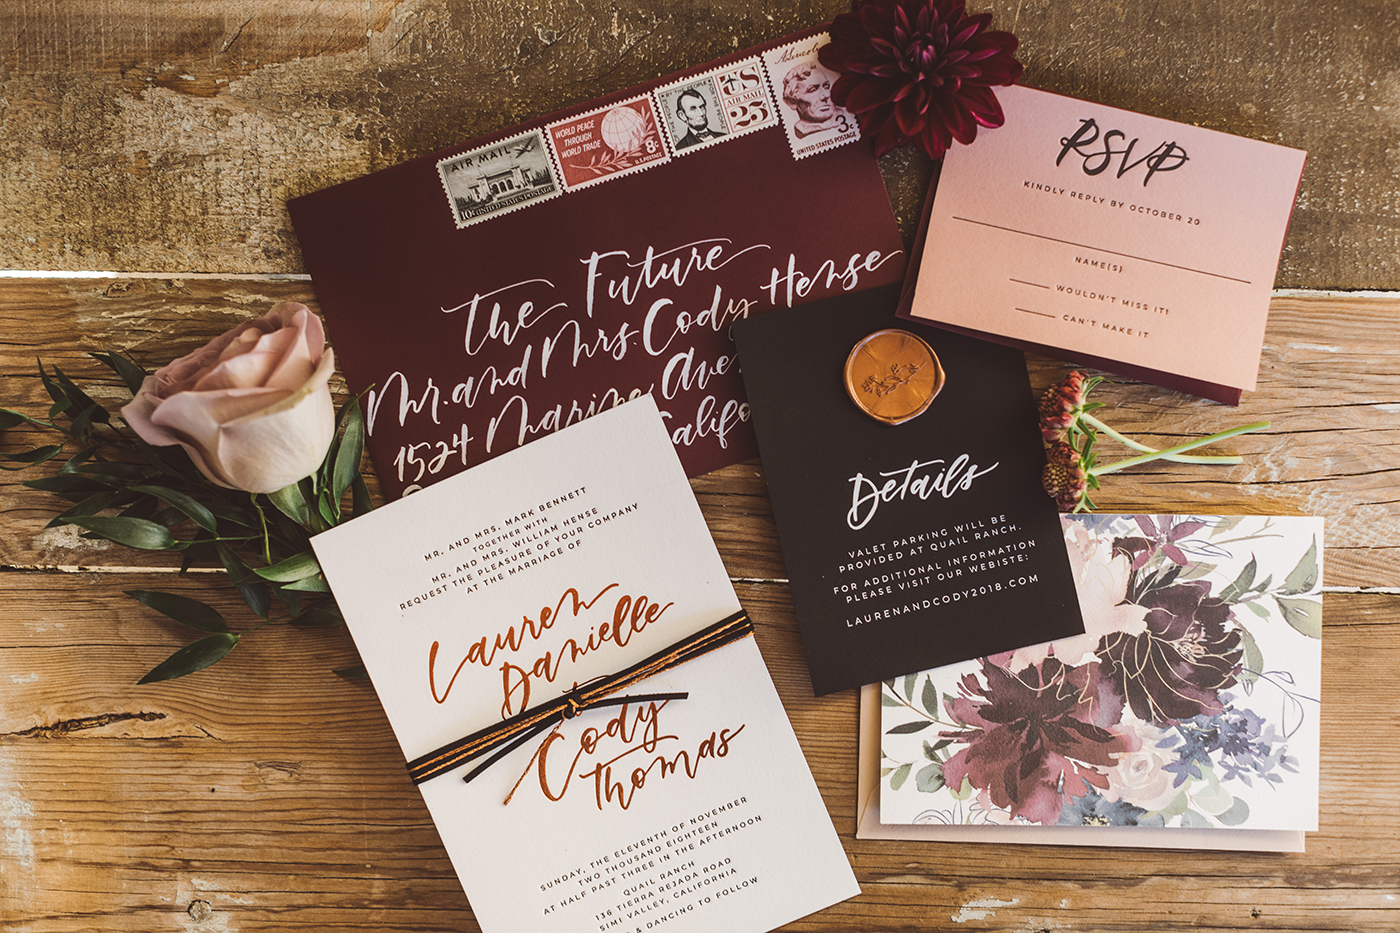 Burgundy and black wedding invitations